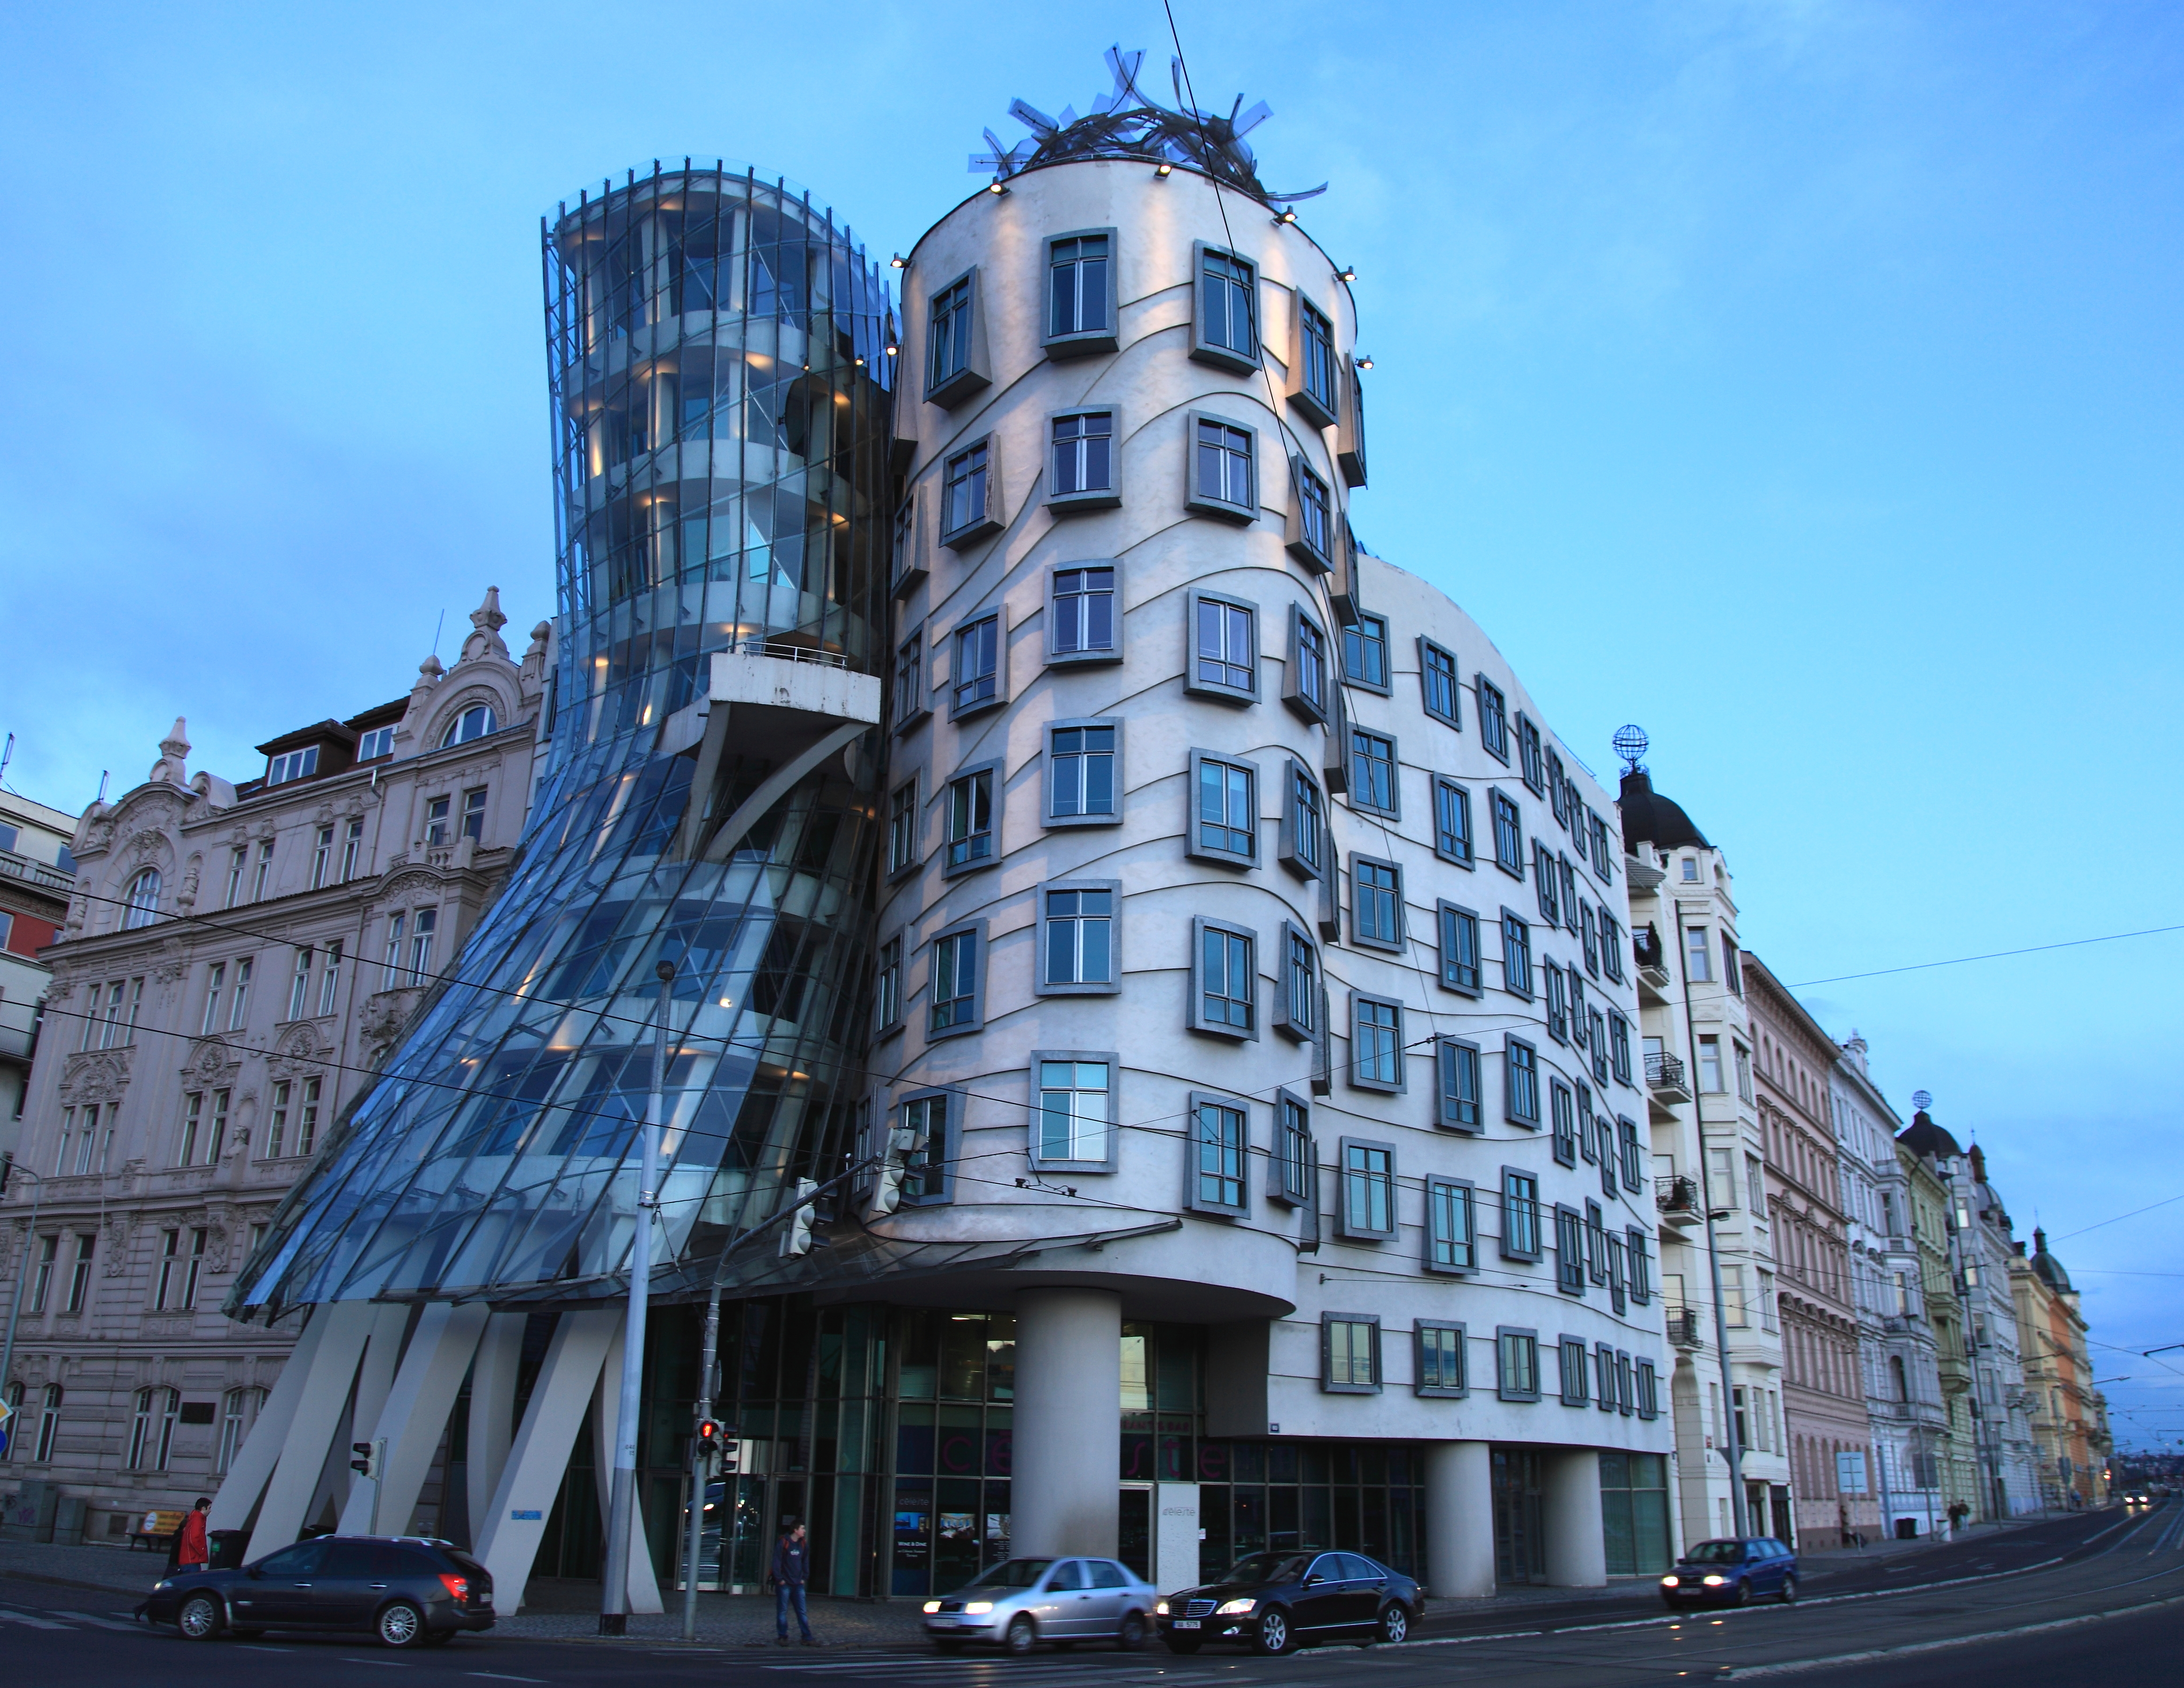 SEE & DO: DANCING HOUSE